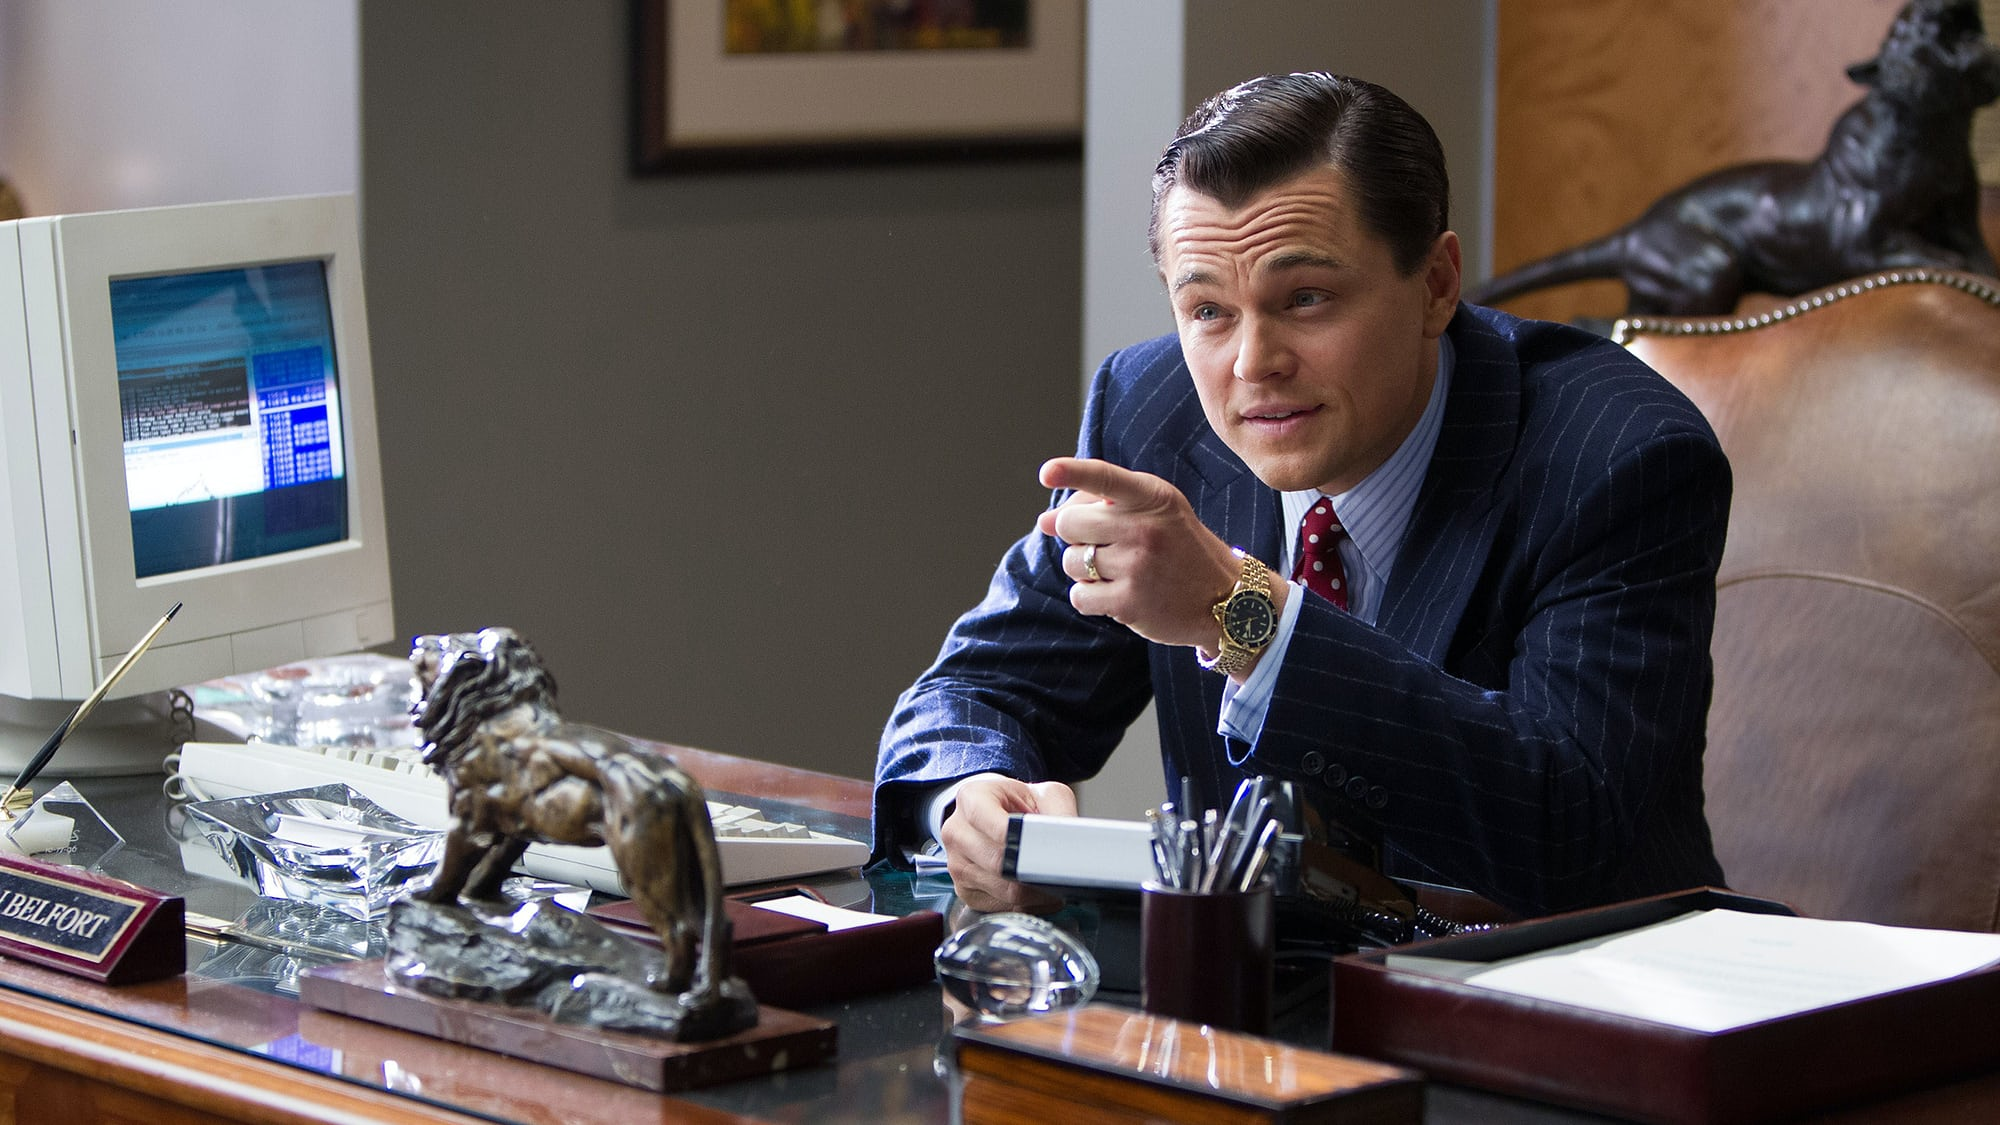 Watching Movies: Leonardo DiCaprio Wears Two TAG Heuers For 'The Wolf Of Wall Street'